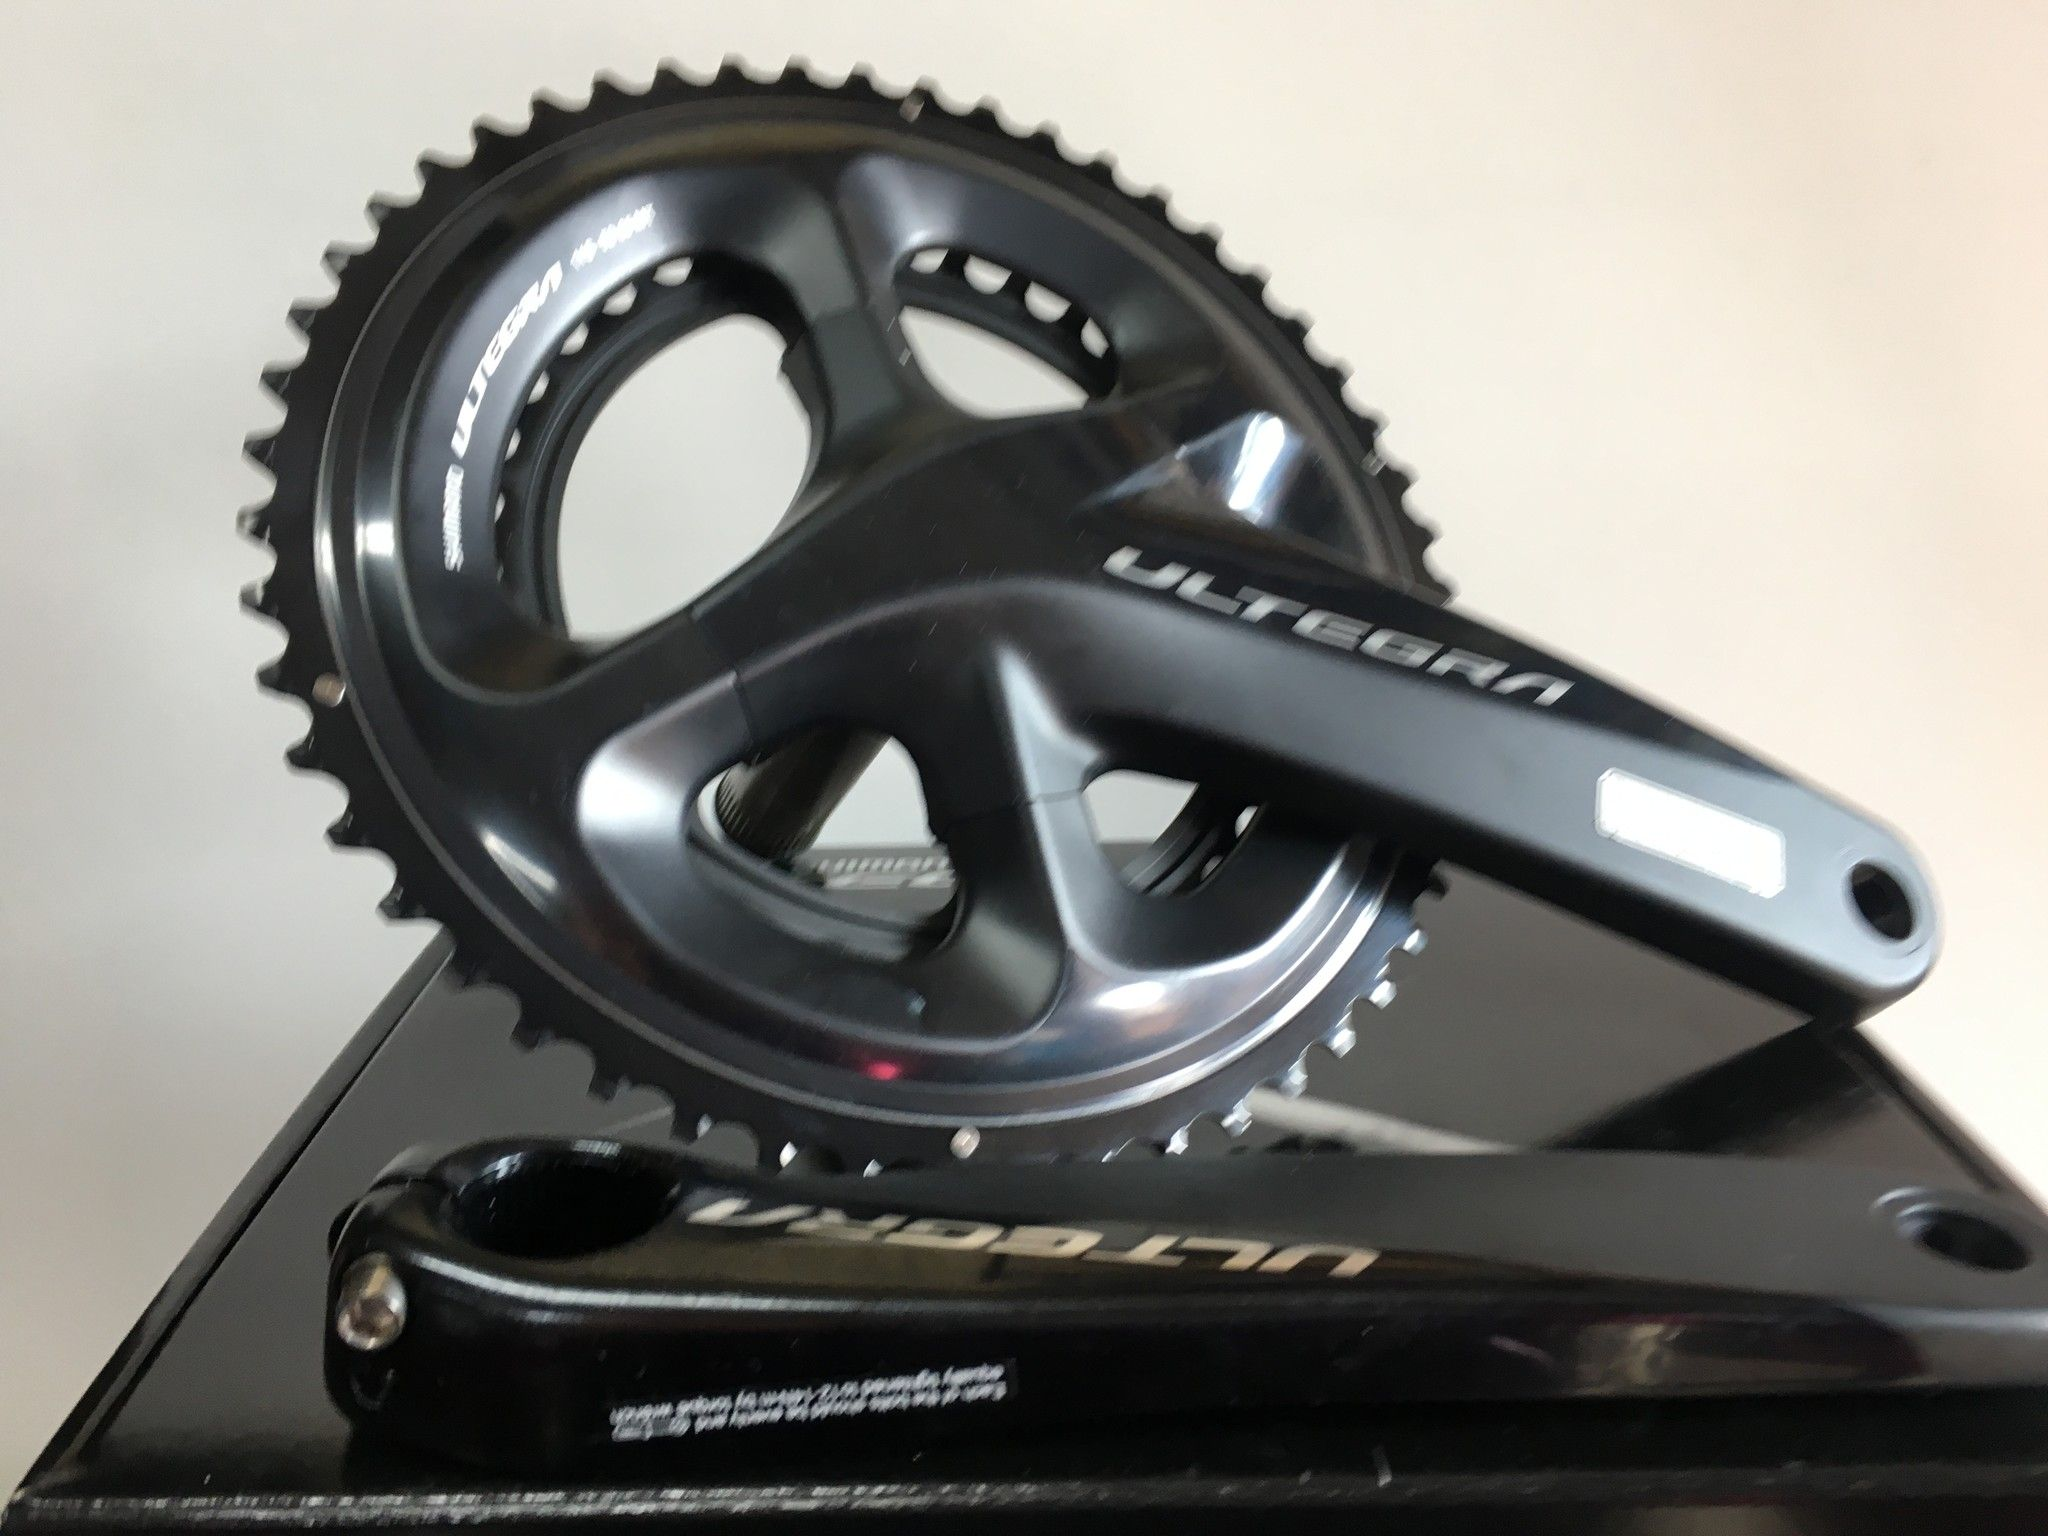 GUARNITURA SHIMANO ULTEGRA 8000 36-53 175